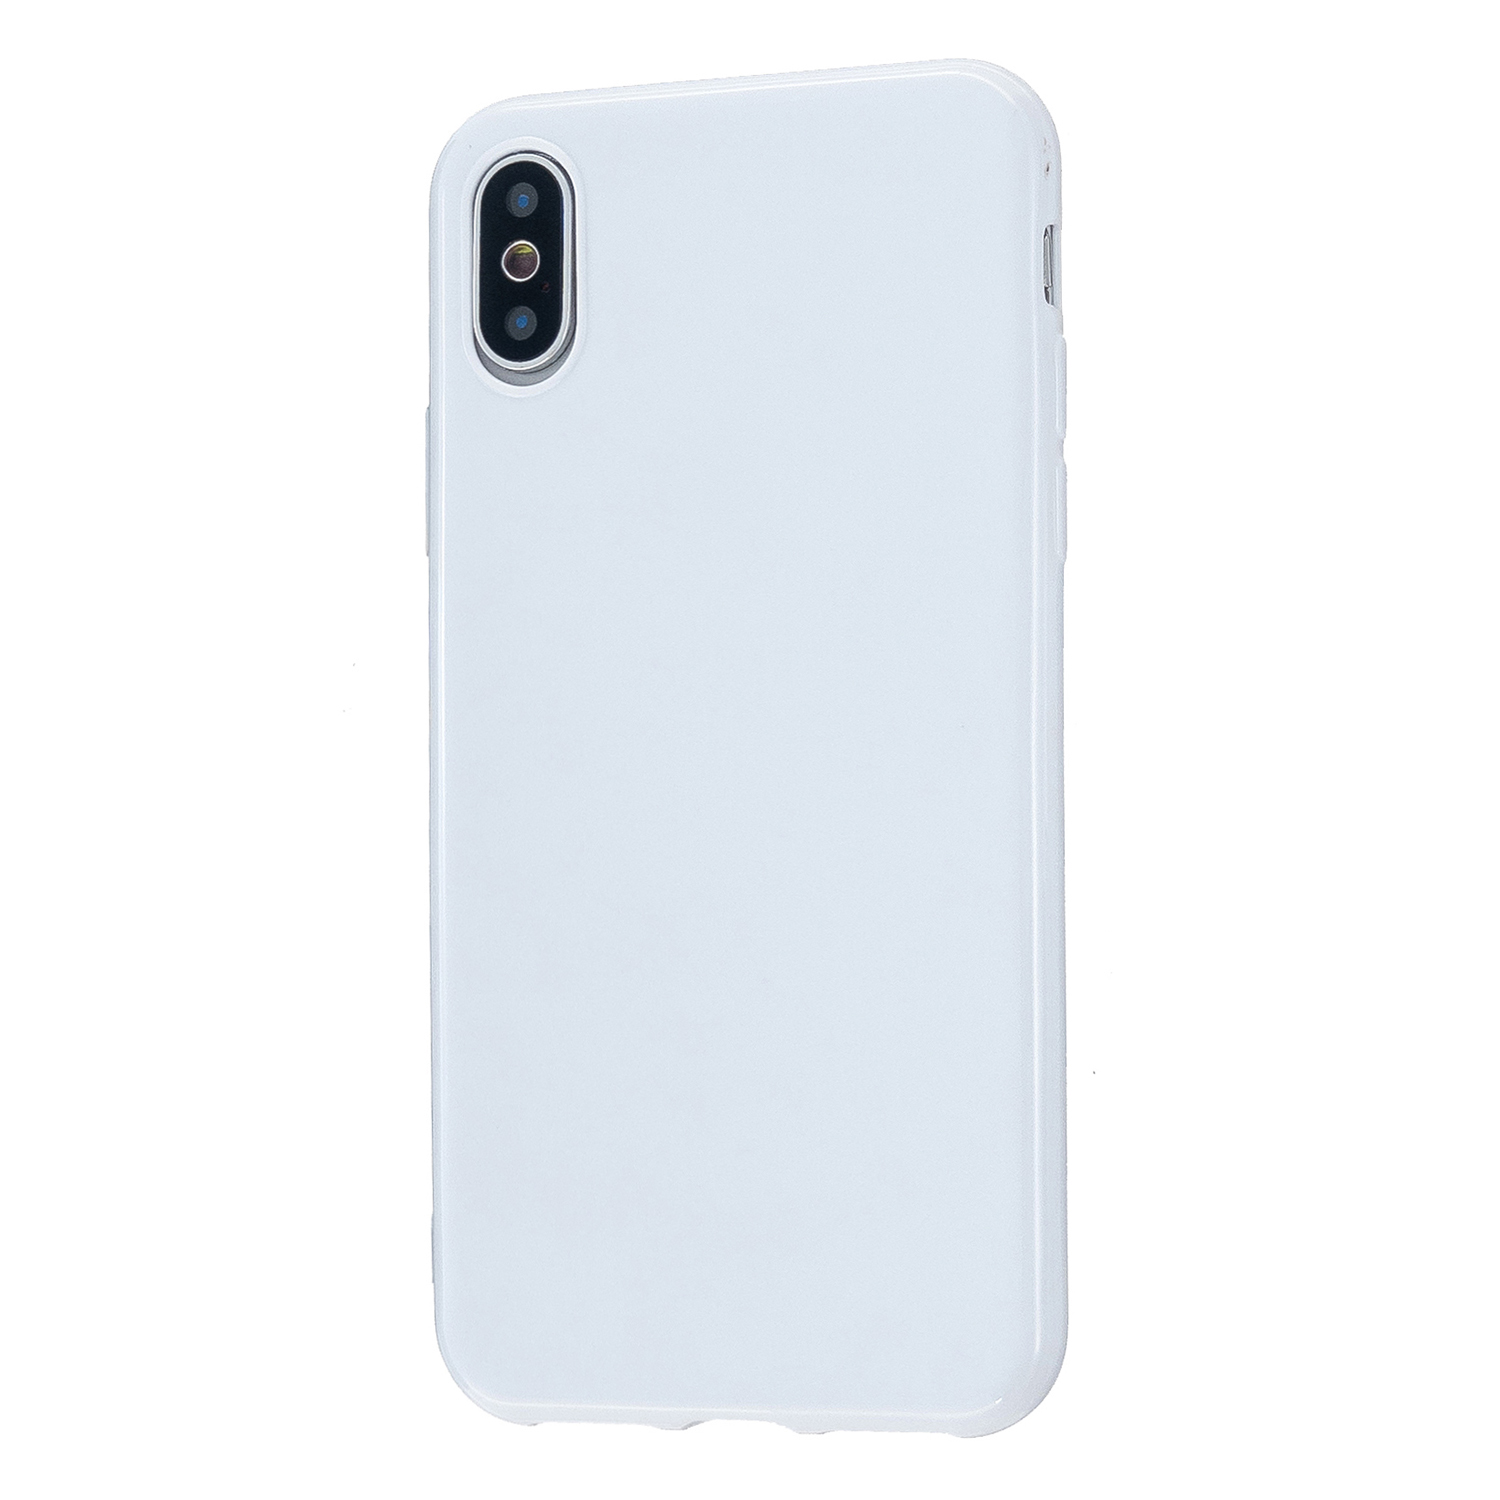 For iPhone X/XS/XS Max/XR  Cellphone Cover Slim Fit Bumper Protective Case Glossy TPU Mobile Phone Shell Milk white